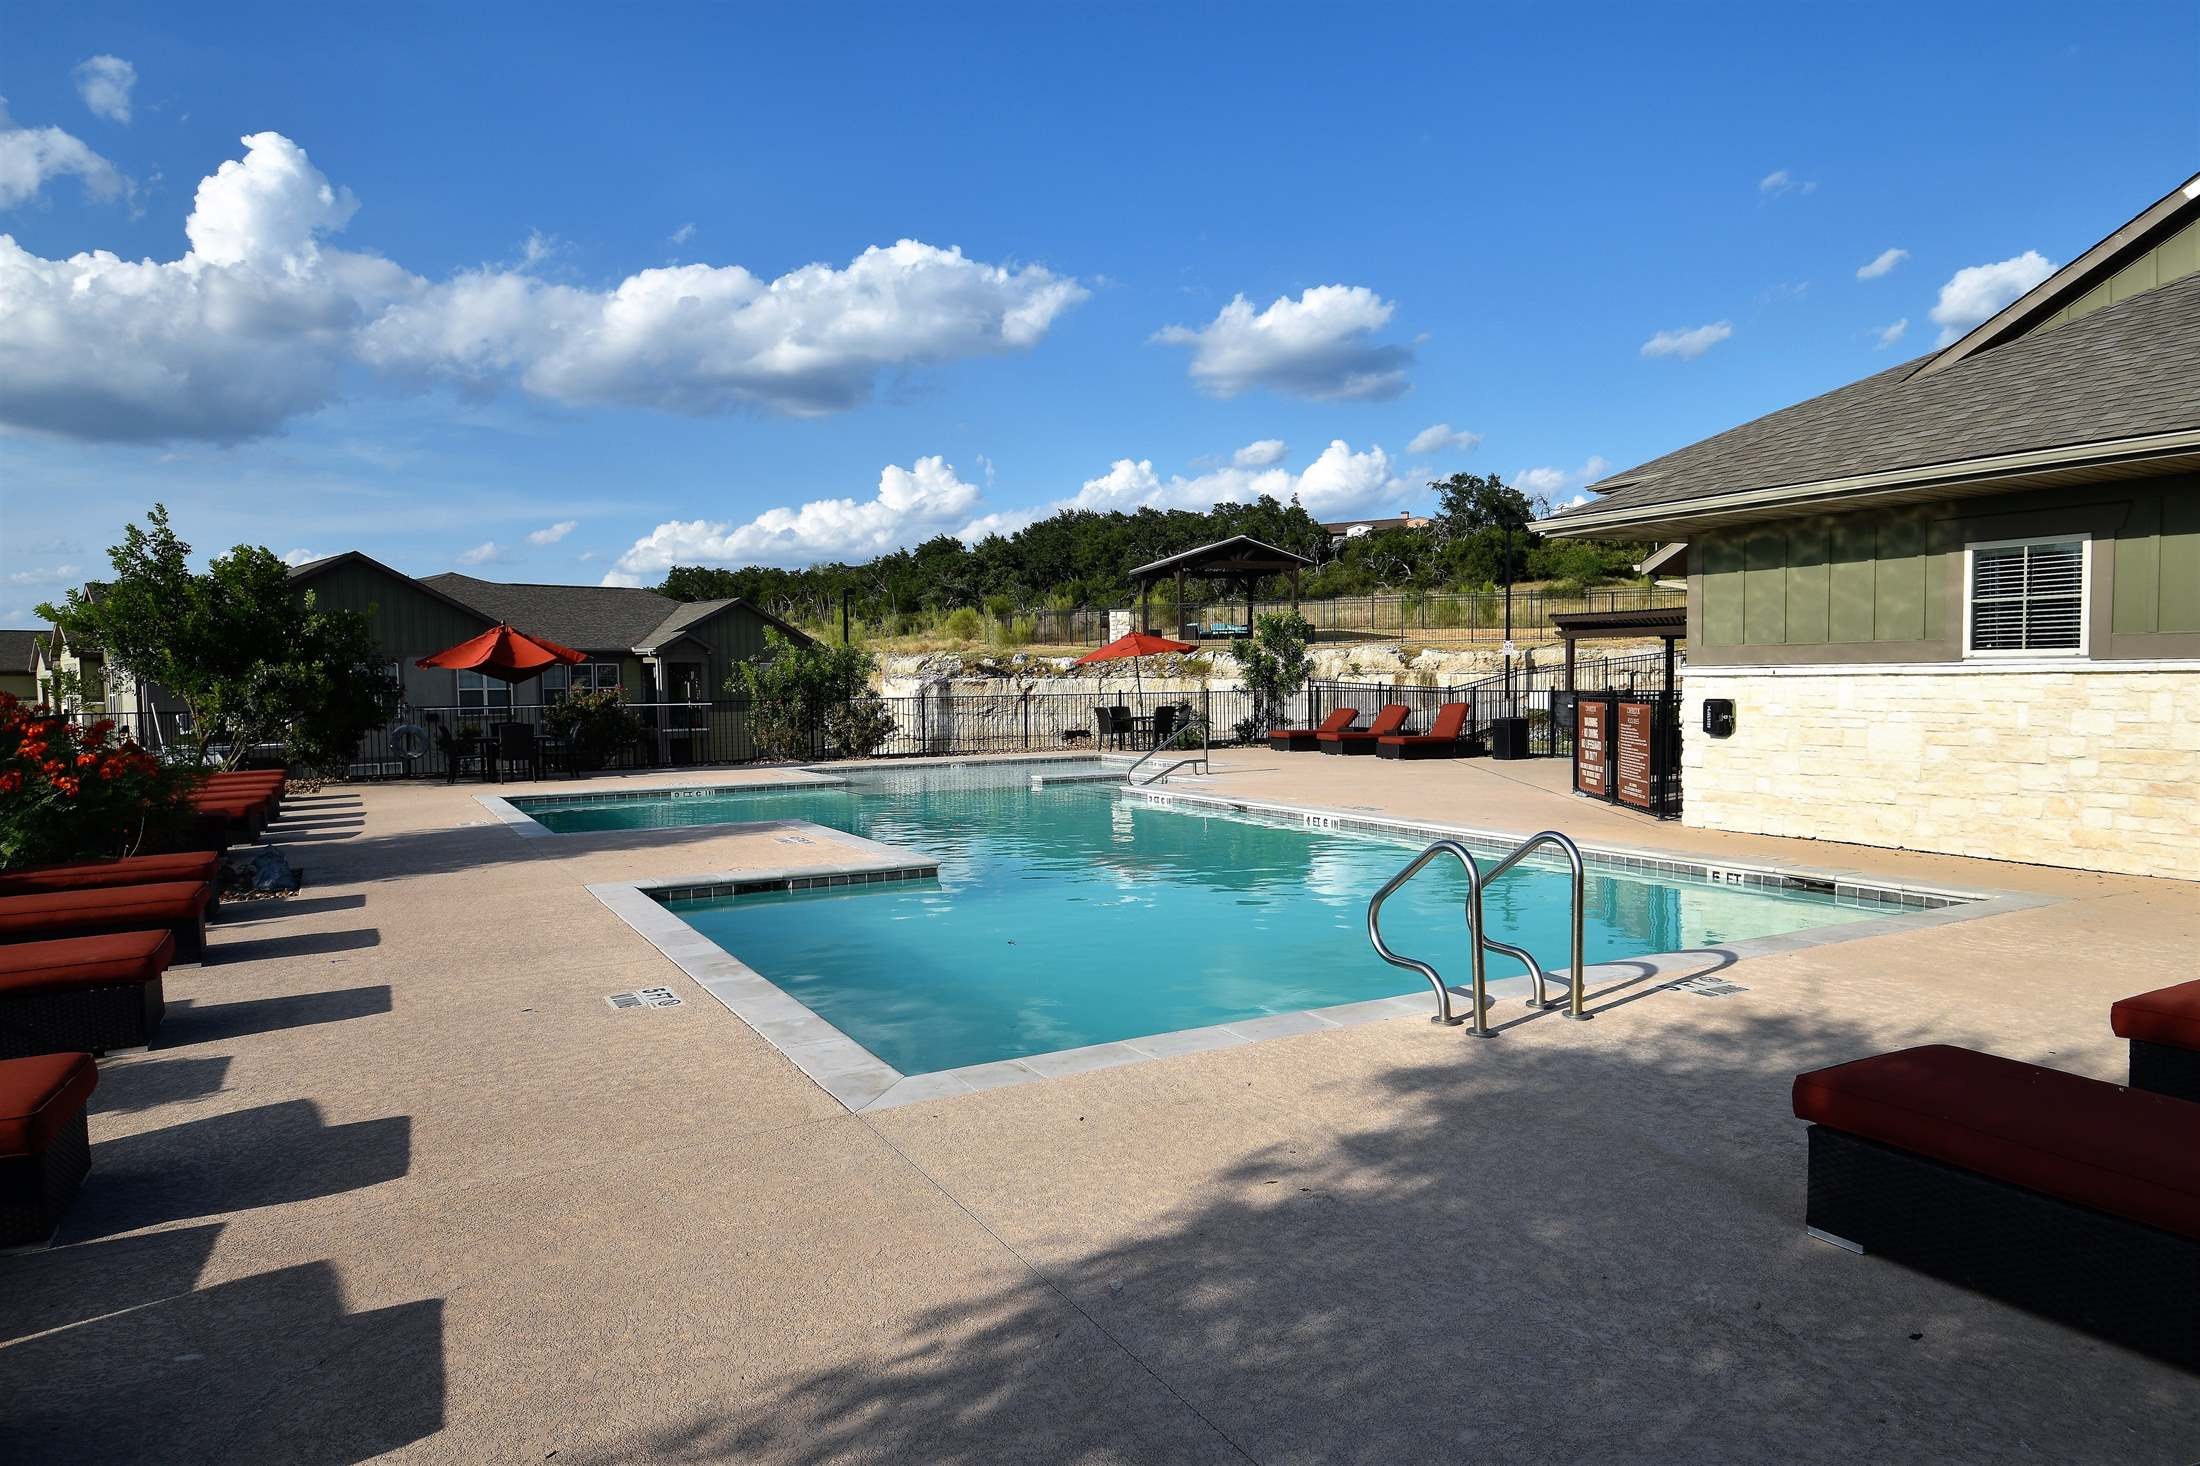 22211 Park Summit Cove, #22211, San Antonio, TX 78258